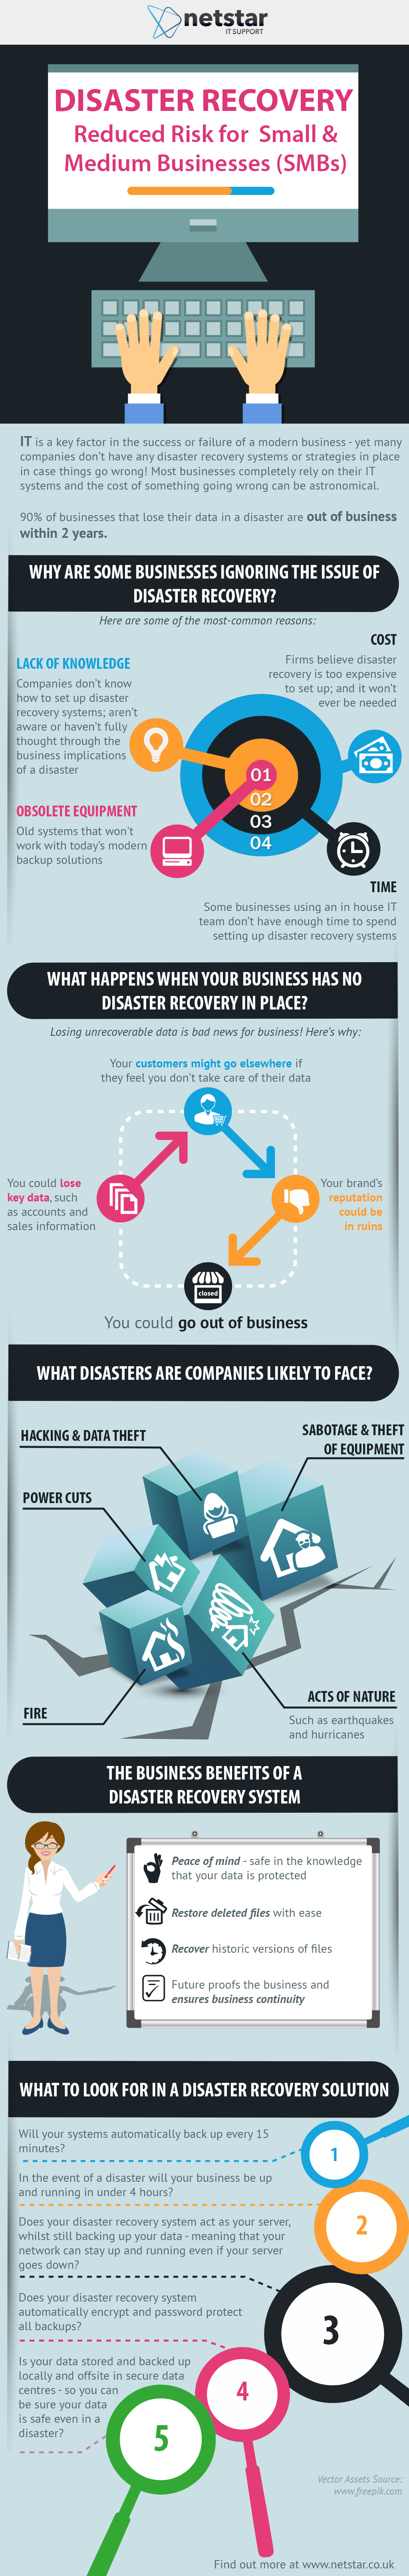 Disaster_Recovery_-_Reduced_Risk_for_Small_and_Medium_Businesses